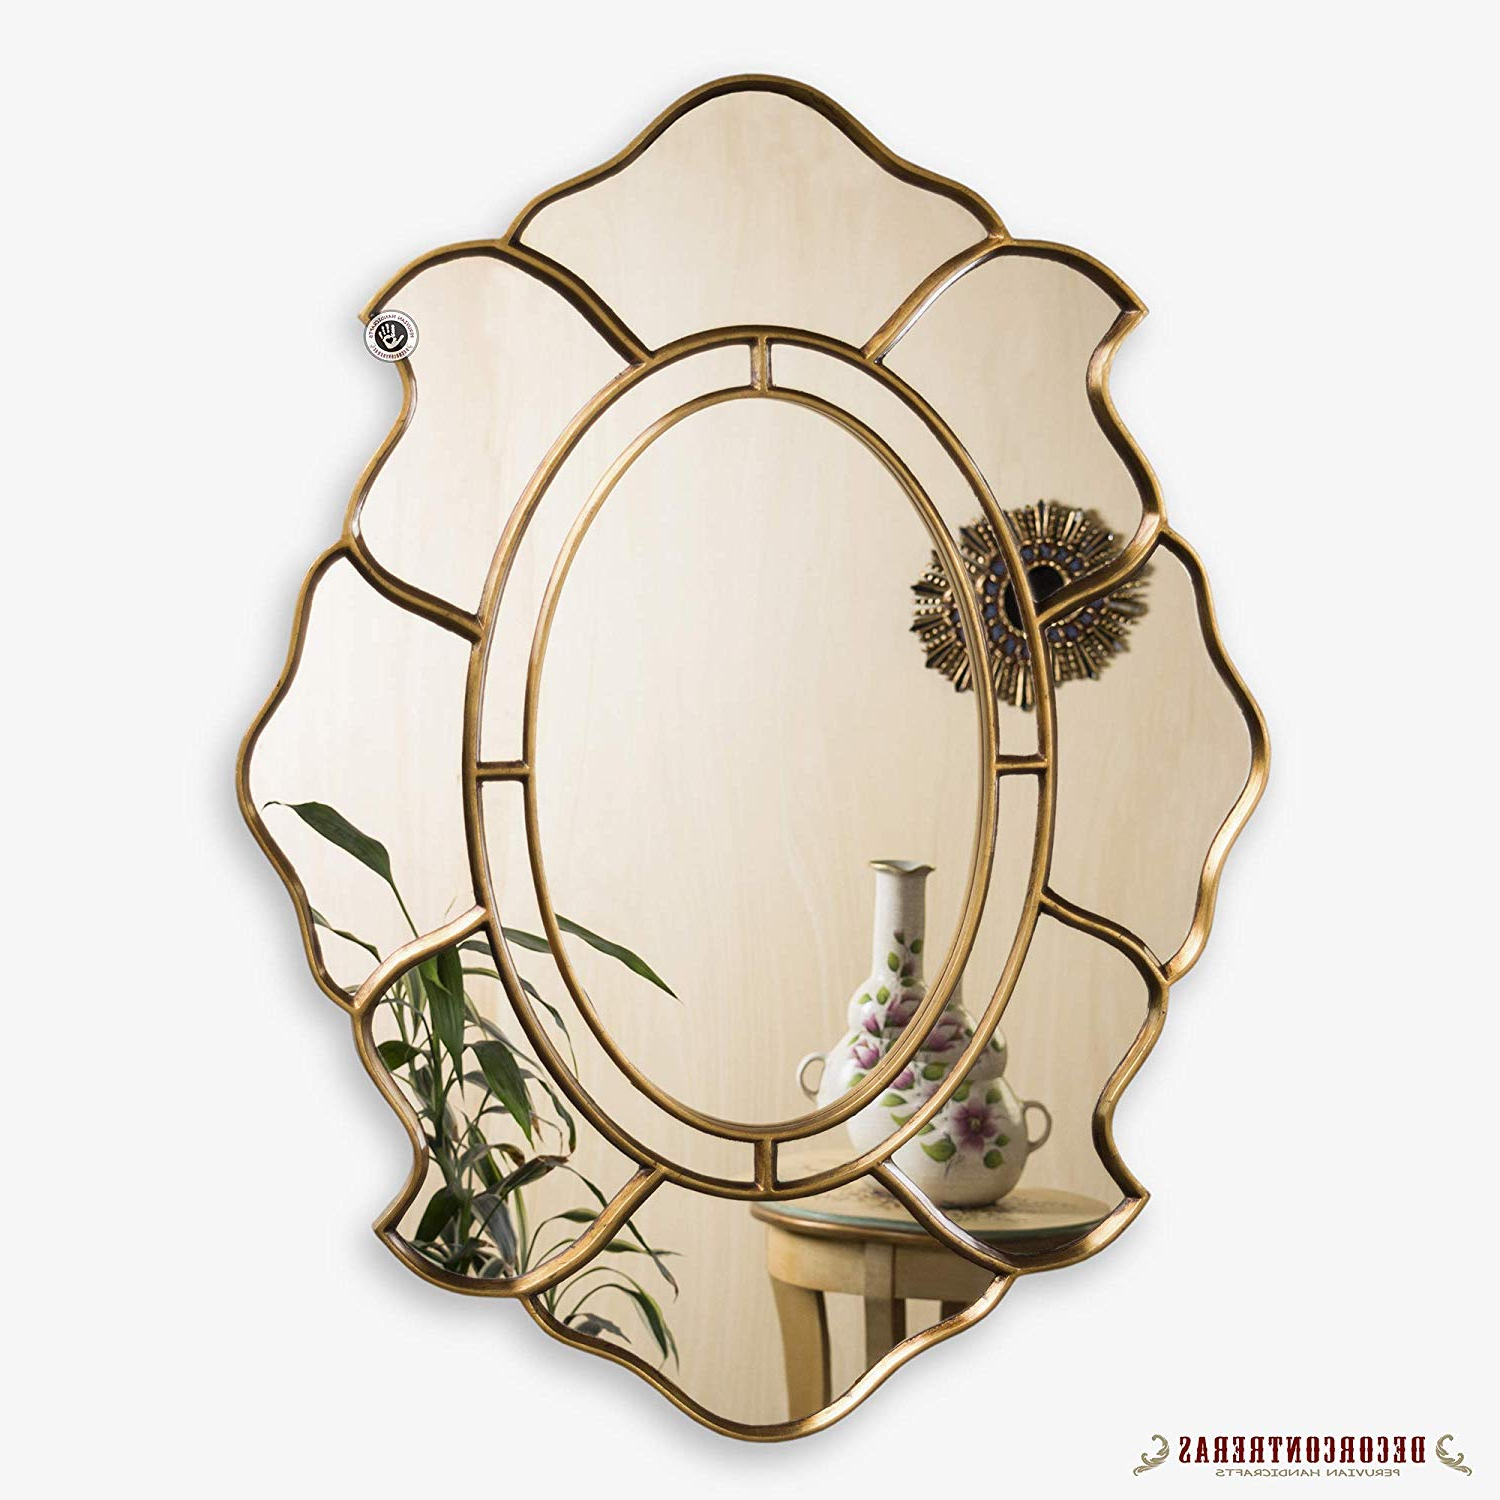 Recent Oval Metallic Accent Mirrors Throughout Amazon: Gold Oval Accent Wall Mirror, Decorative Oval Mirror For (View 9 of 20)